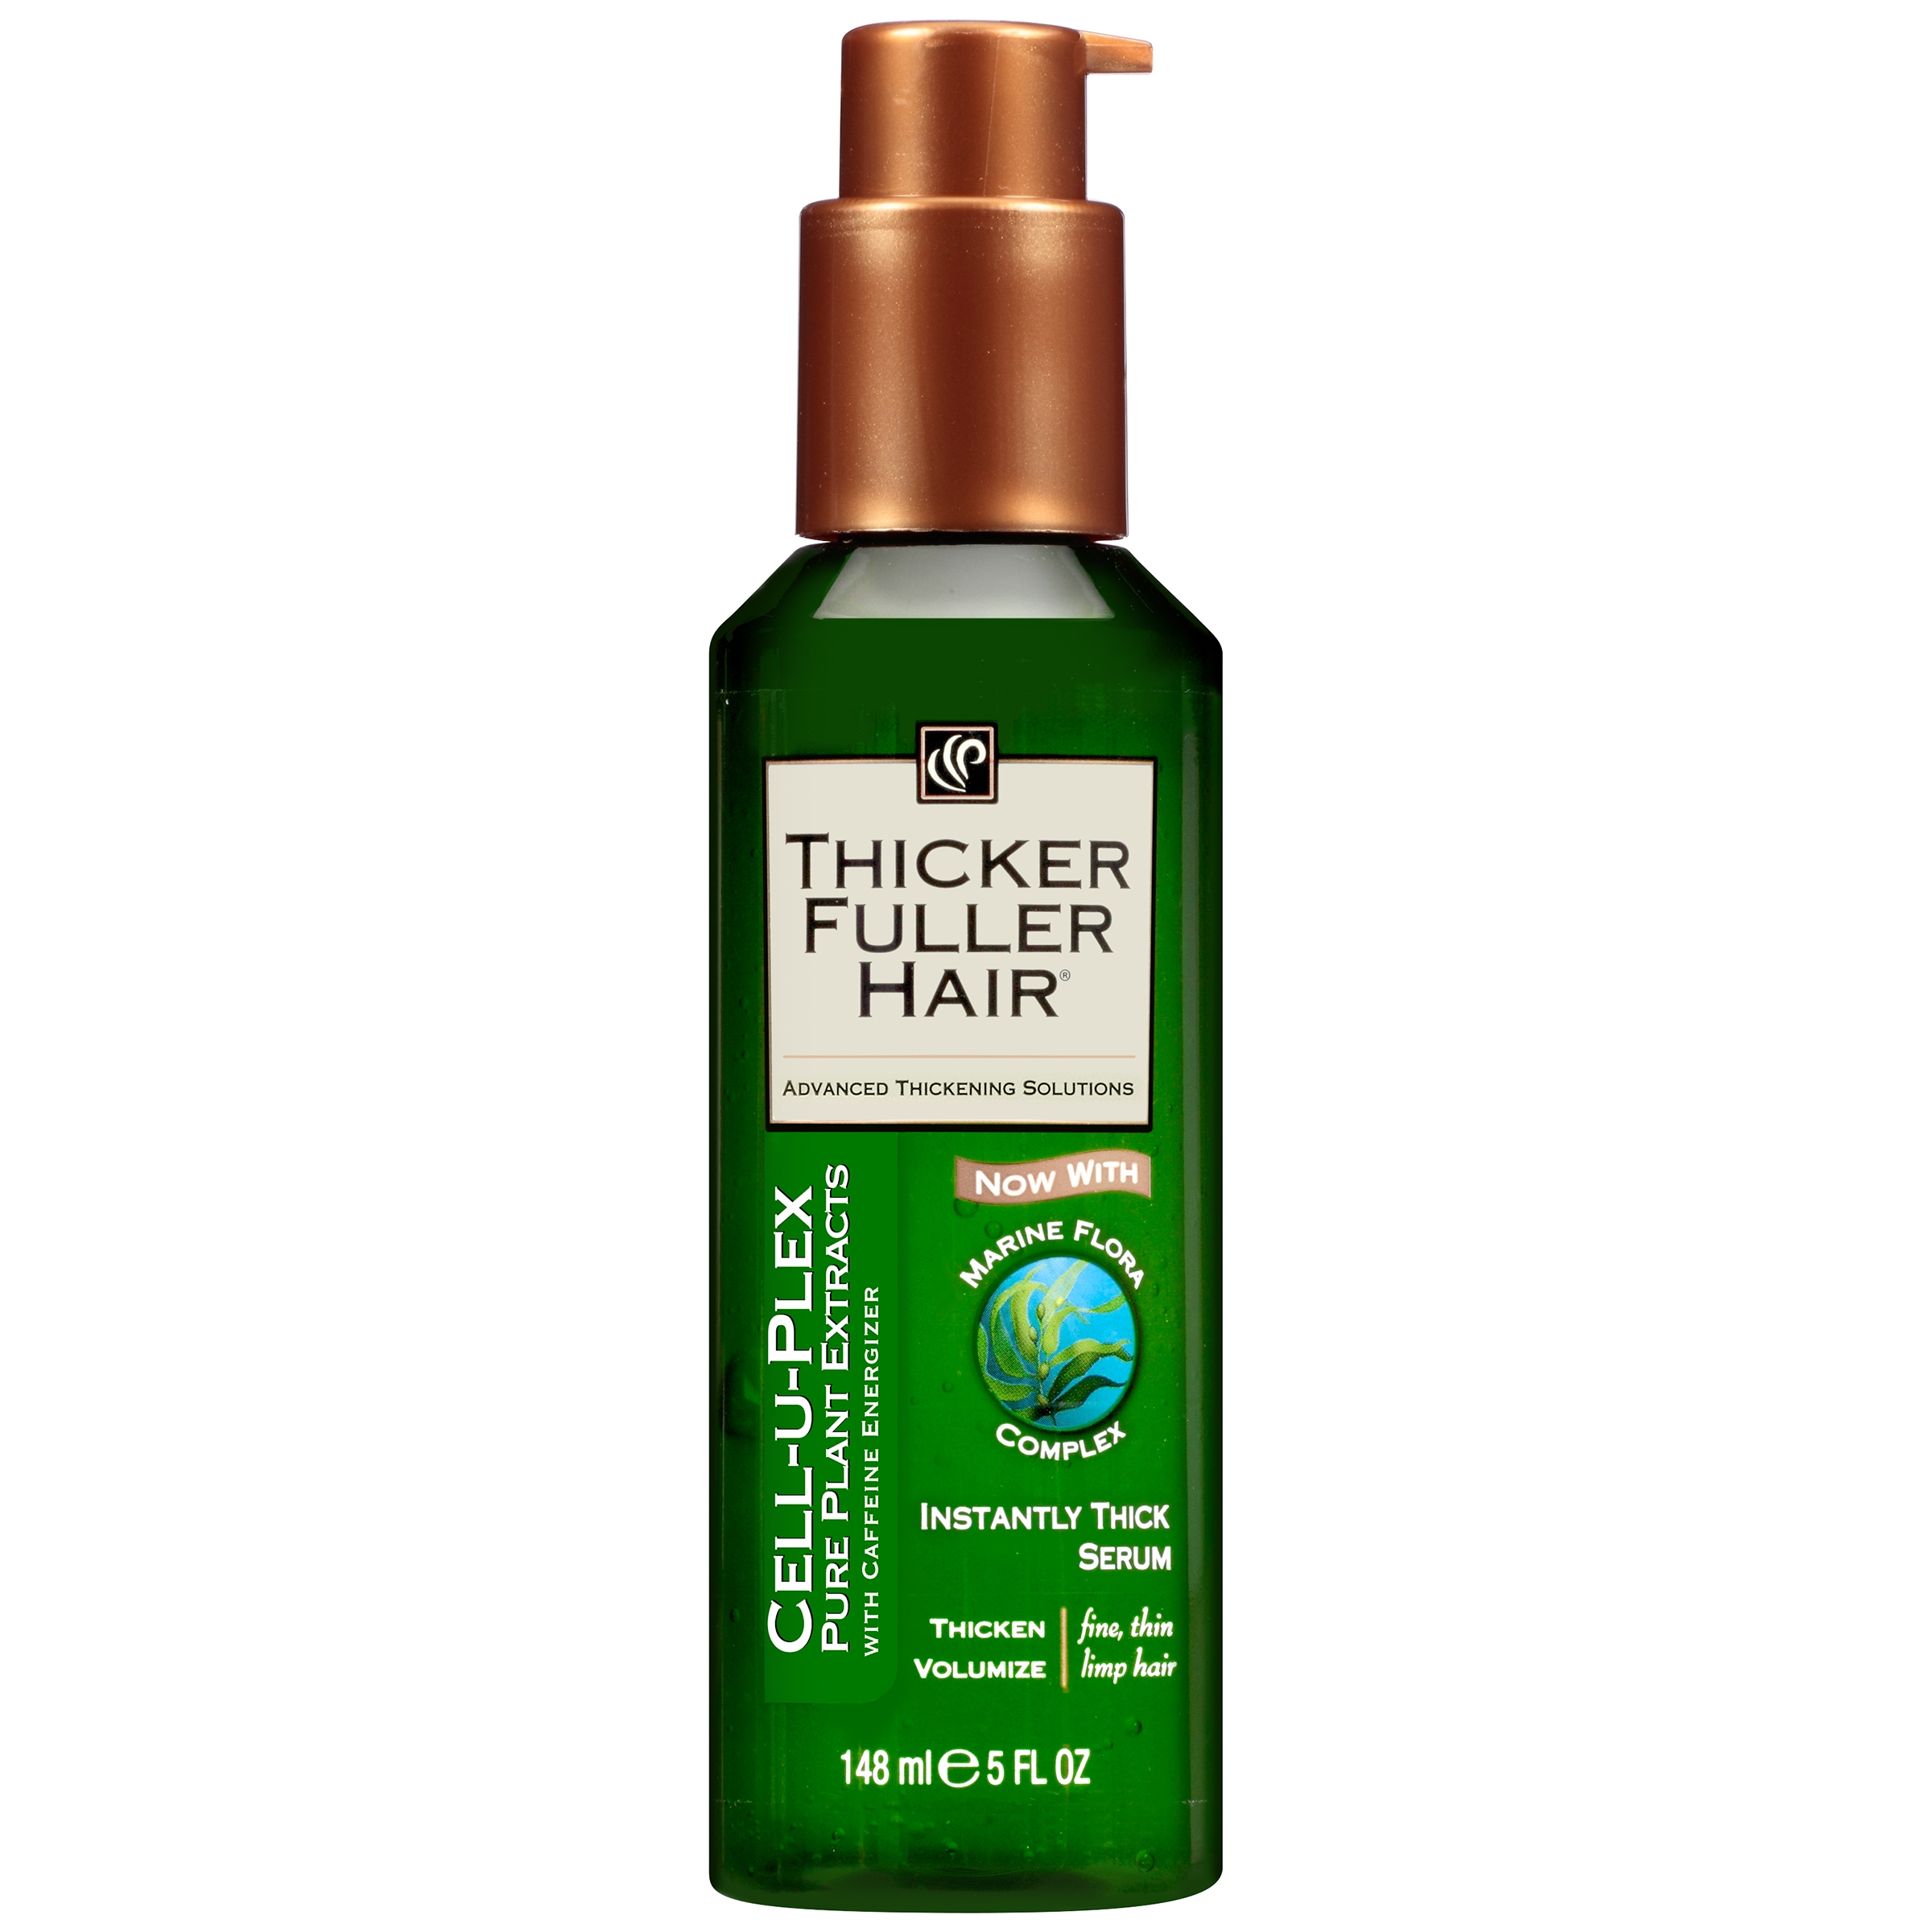 Thicker Fuller Hair Instantly Thick Hair Serum, 5 fl oz